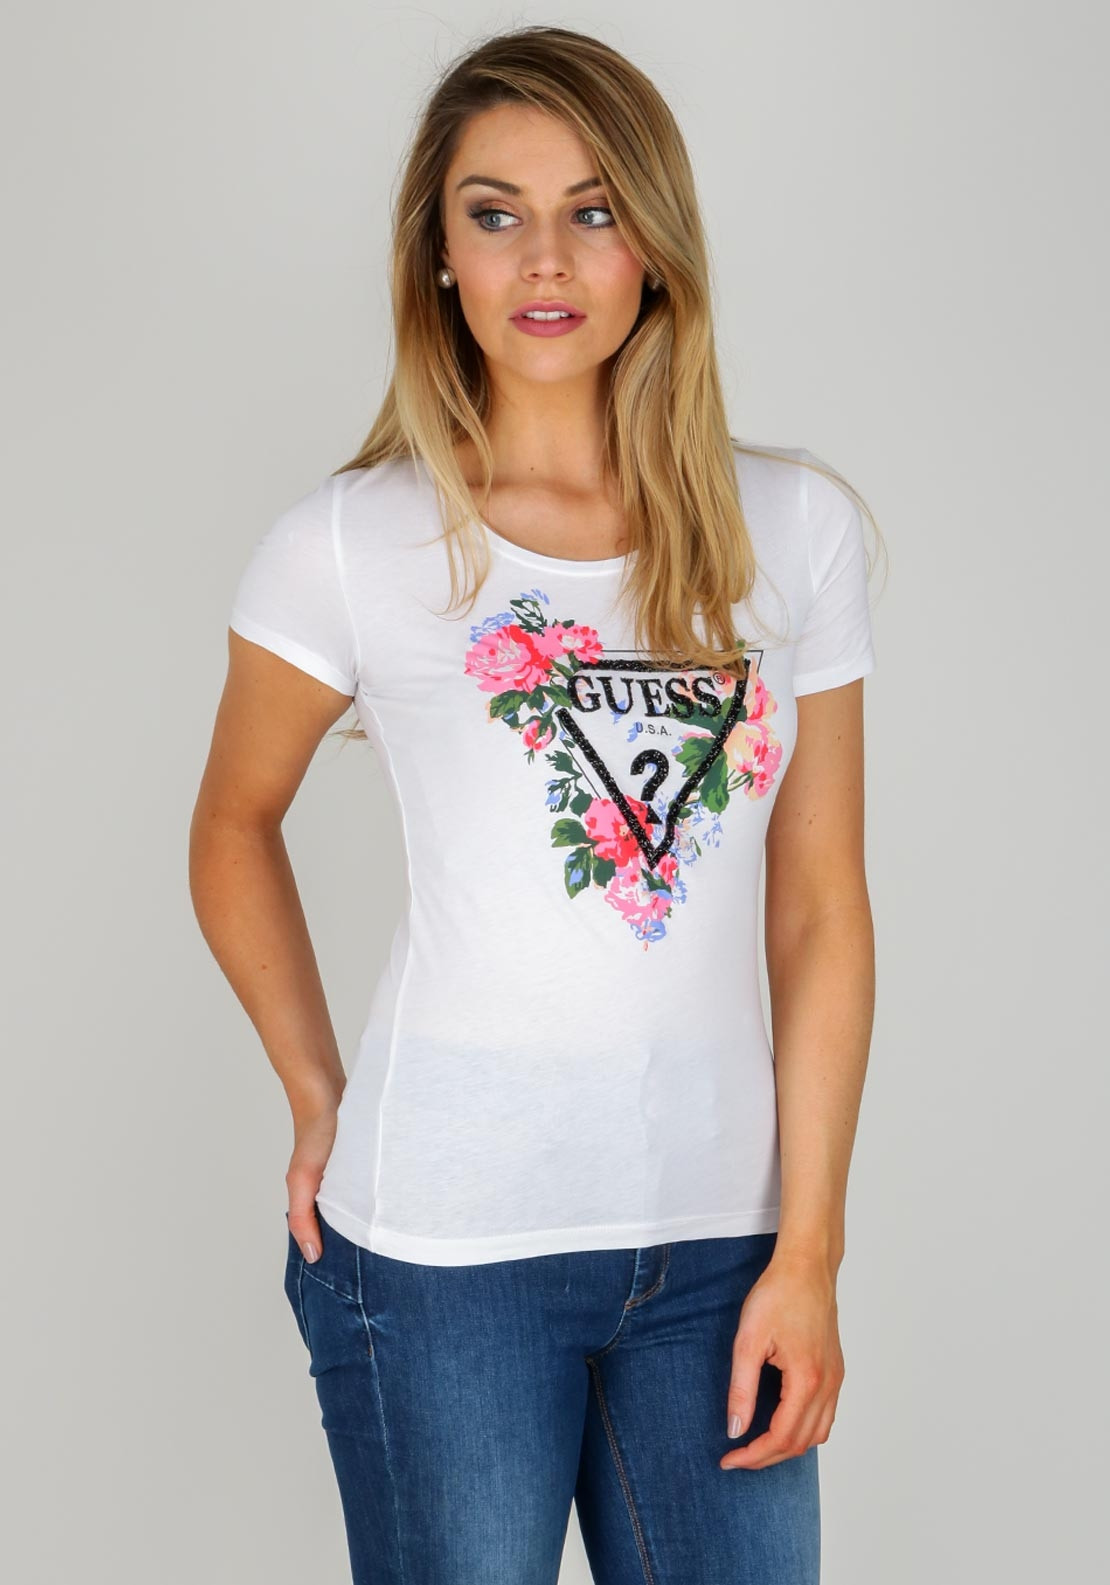 ee62d17be9bb Guess Womens Floral Gem Logo T-Shirt, White. Be the first to review this  product